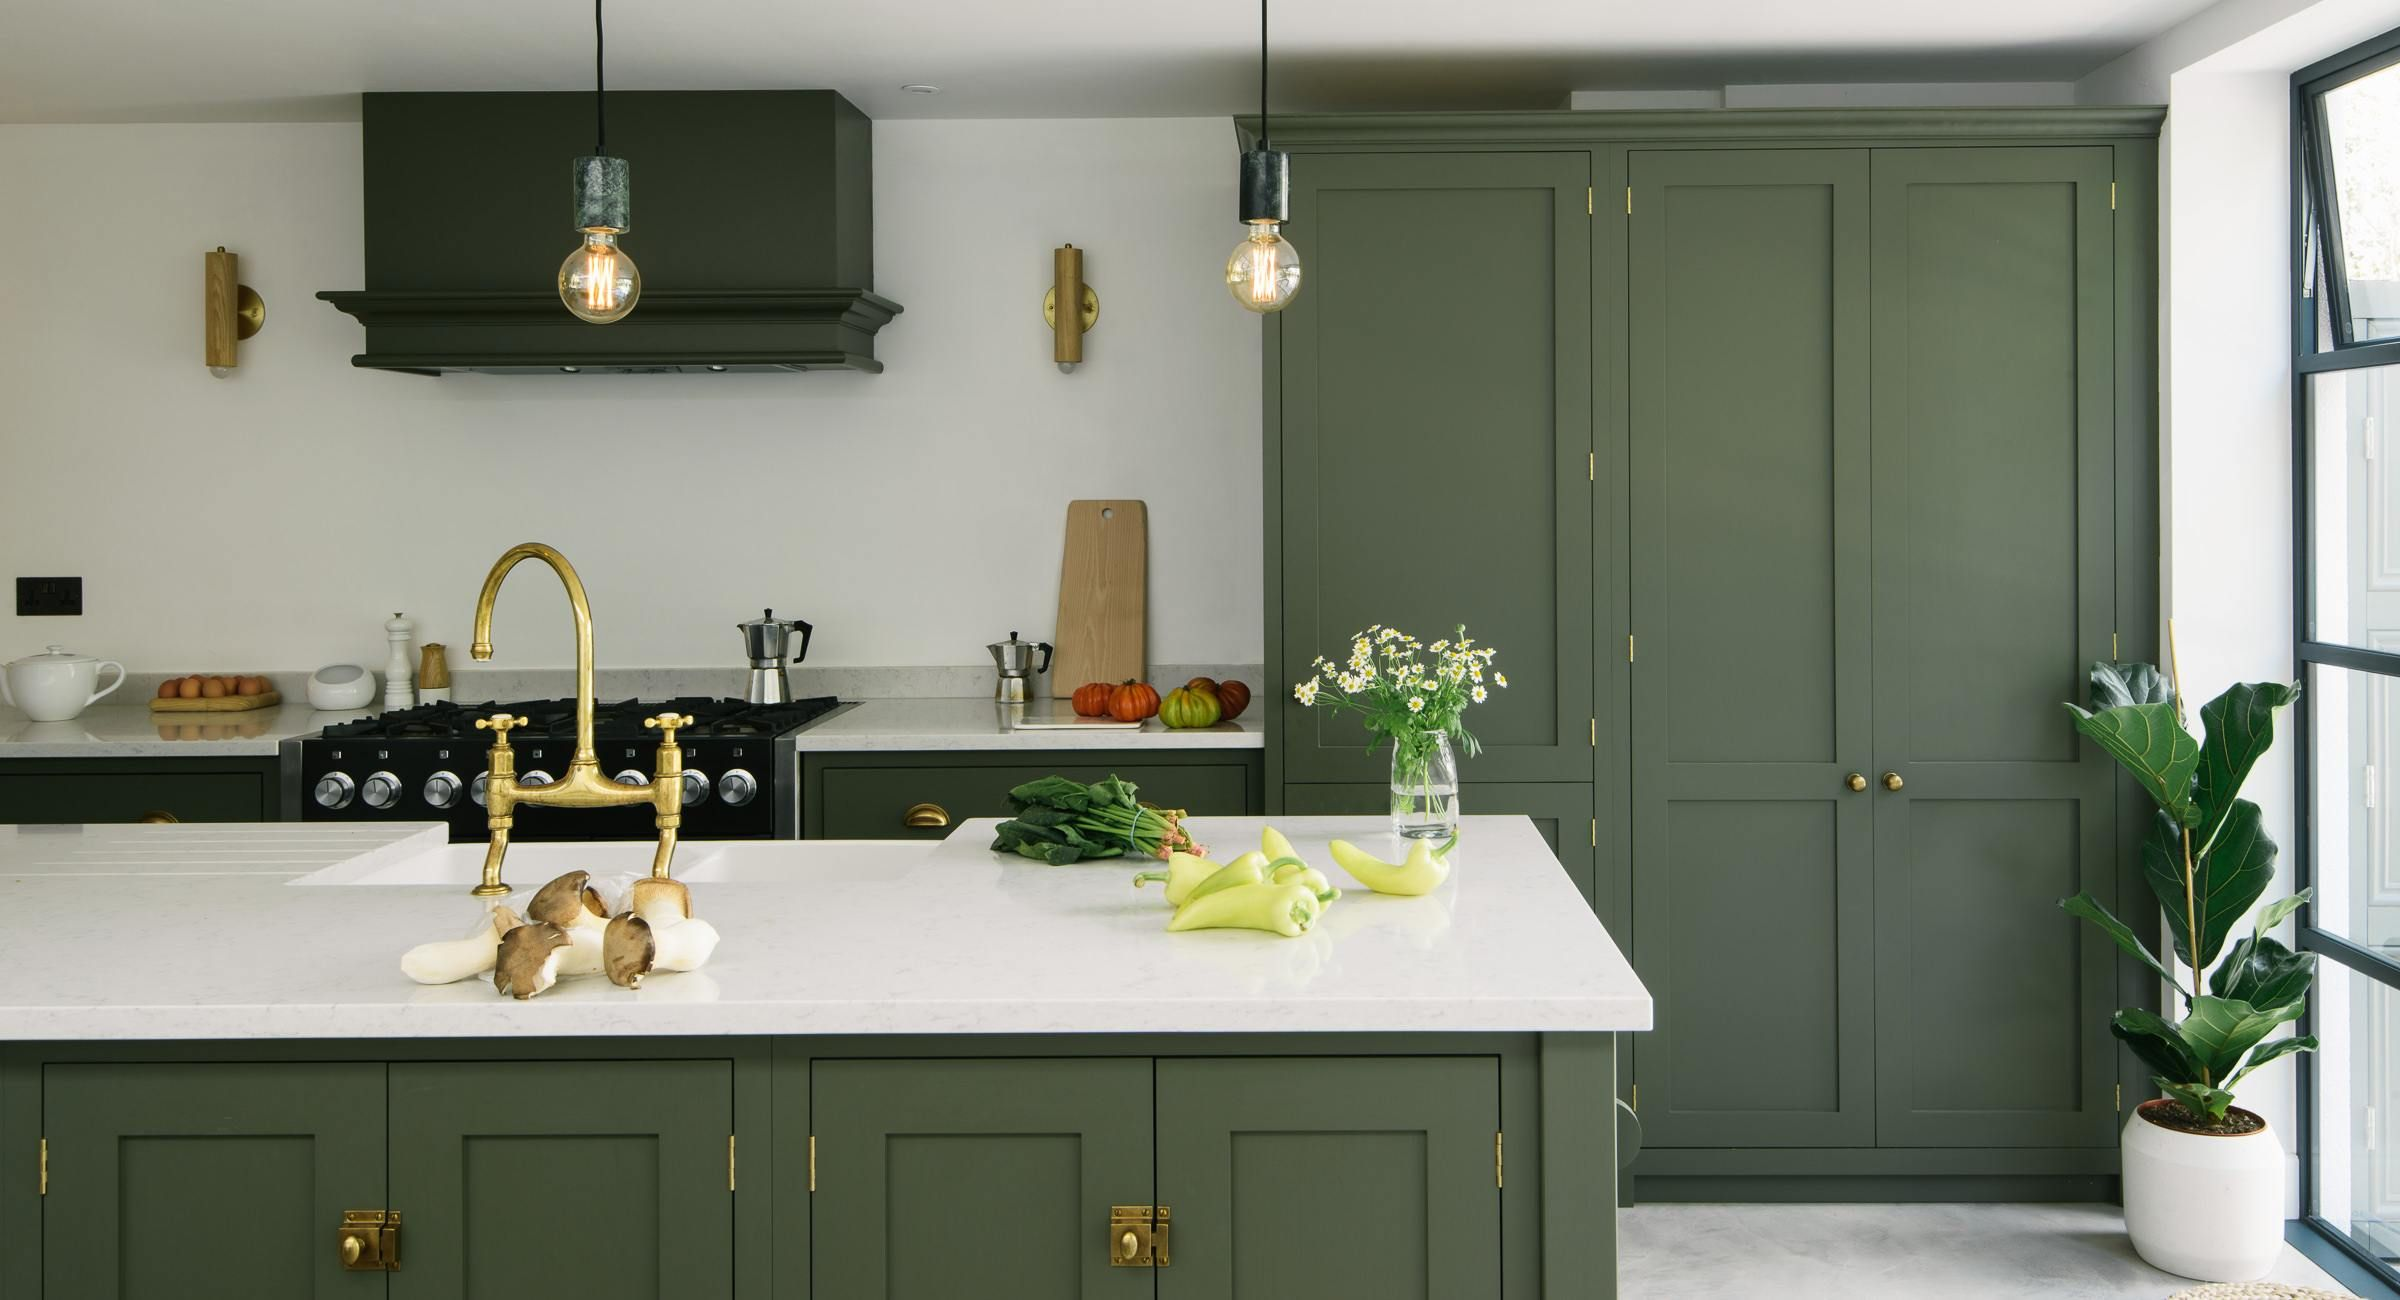 Brass Gold Handles Green Cabinets Big Window At End Of Kitchen Gray Floors White Counte Green Kitchen Interior Kitchen Color Trends Interior Design Kitchen